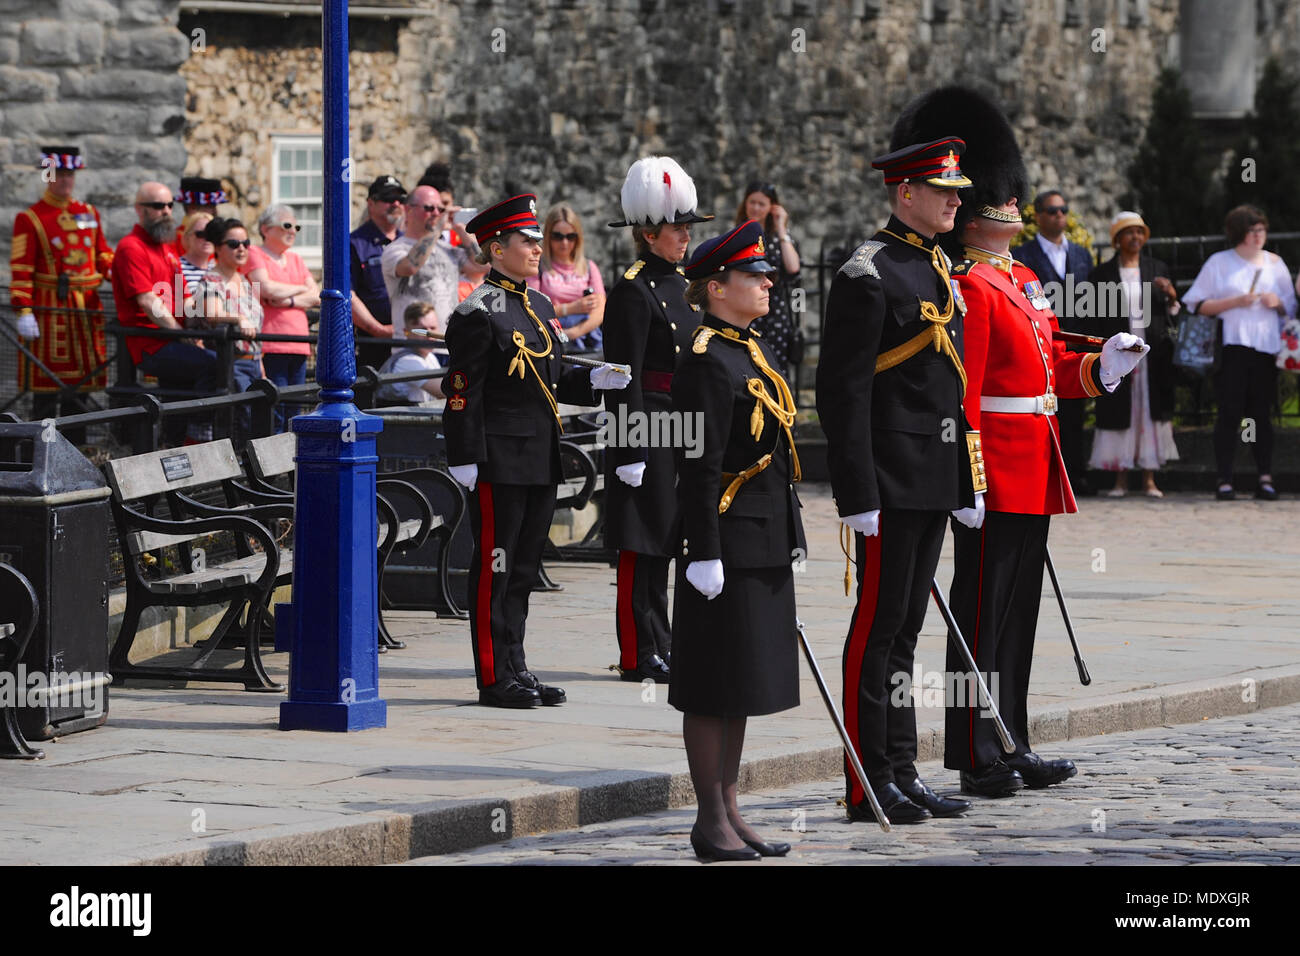 London, UK. 21st April 2018. Officers of The Honourable Artillery Company (HAC, the City of London's Reserve Army Regiment) standing at attention outside the Tower of London prior to a 62 Gun Salute to mark the 92nd birthday of HM Queen Elizabeth II, London, England, United Kingdom.   The HAC dates its origins to 1537 making it the oldest regiment in the British Army. It took over the role of firing Gun Salutes from the Tower of London in 1924 when the regular detachment stationed there was disbanded. Credit: Michael Preston/Alamy Live News - Stock Image